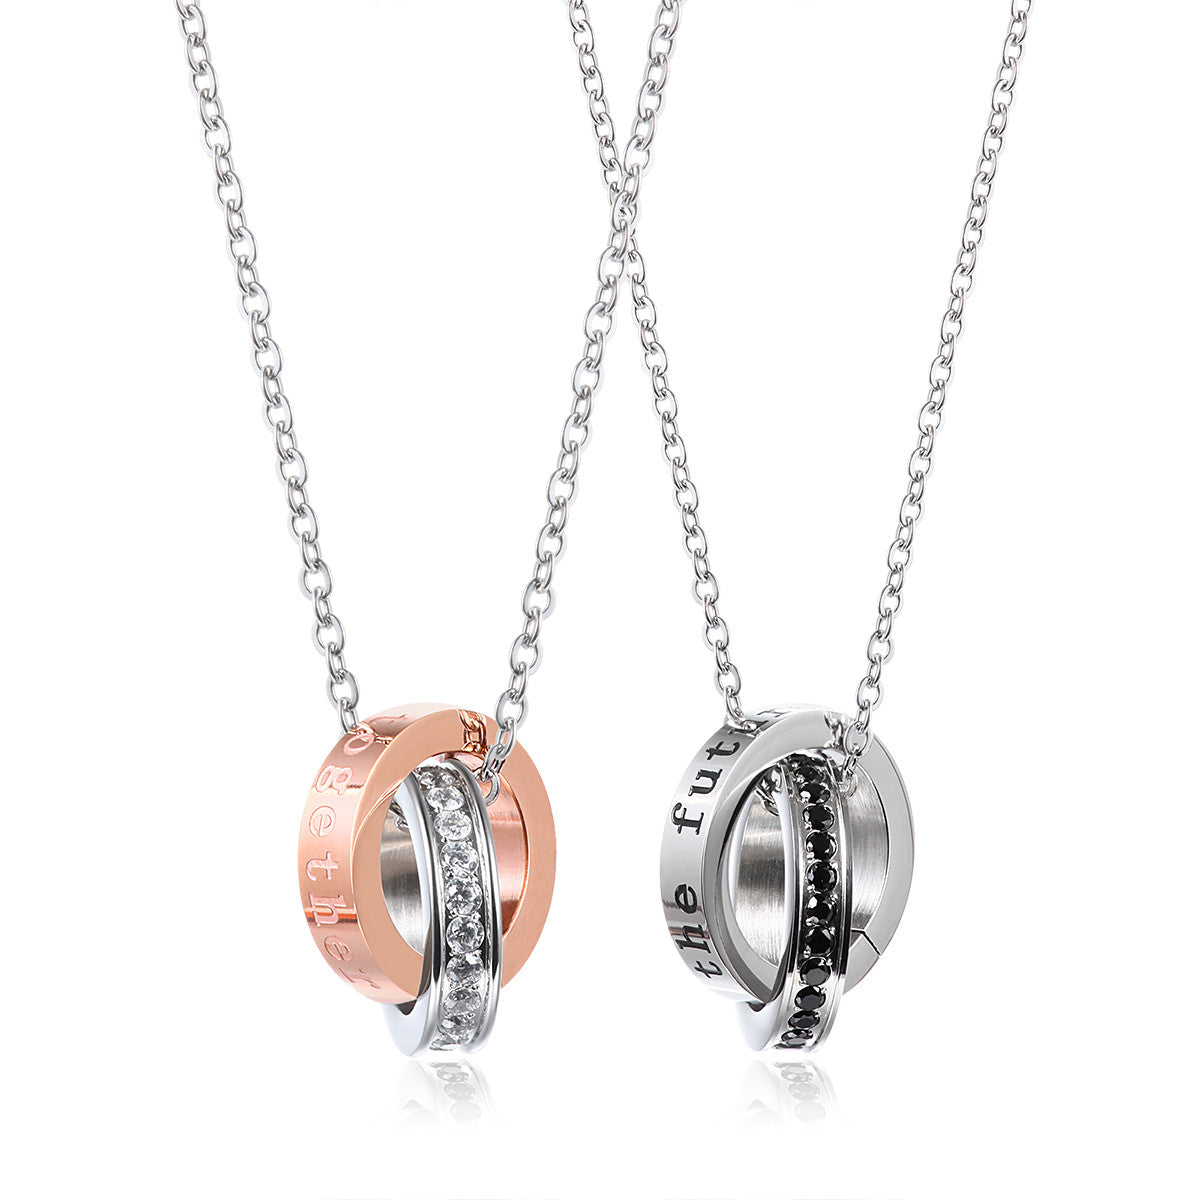 Only You 925 Sterling Silver Couple Necklaces